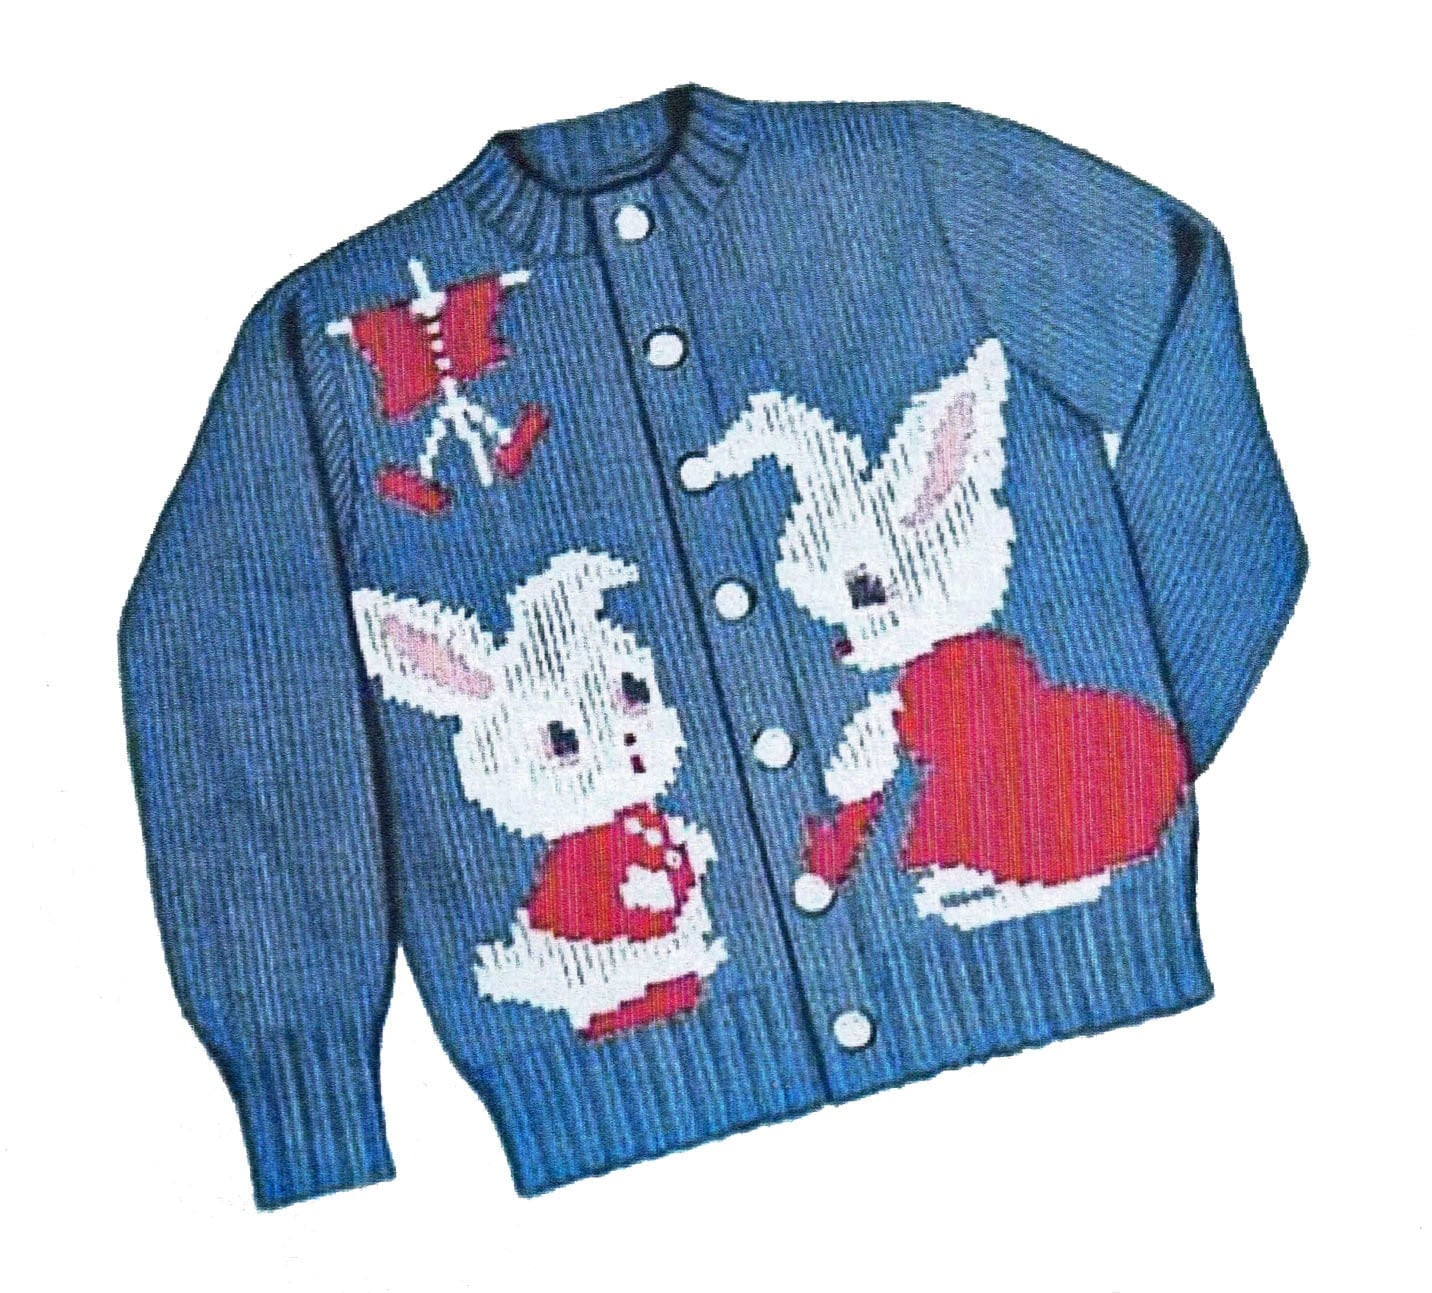 Knitting Pattern For Peter Rabbit Jumper : Peter Rabbit Sweater PATTERN Knit O Graf 203 cardigan pullover